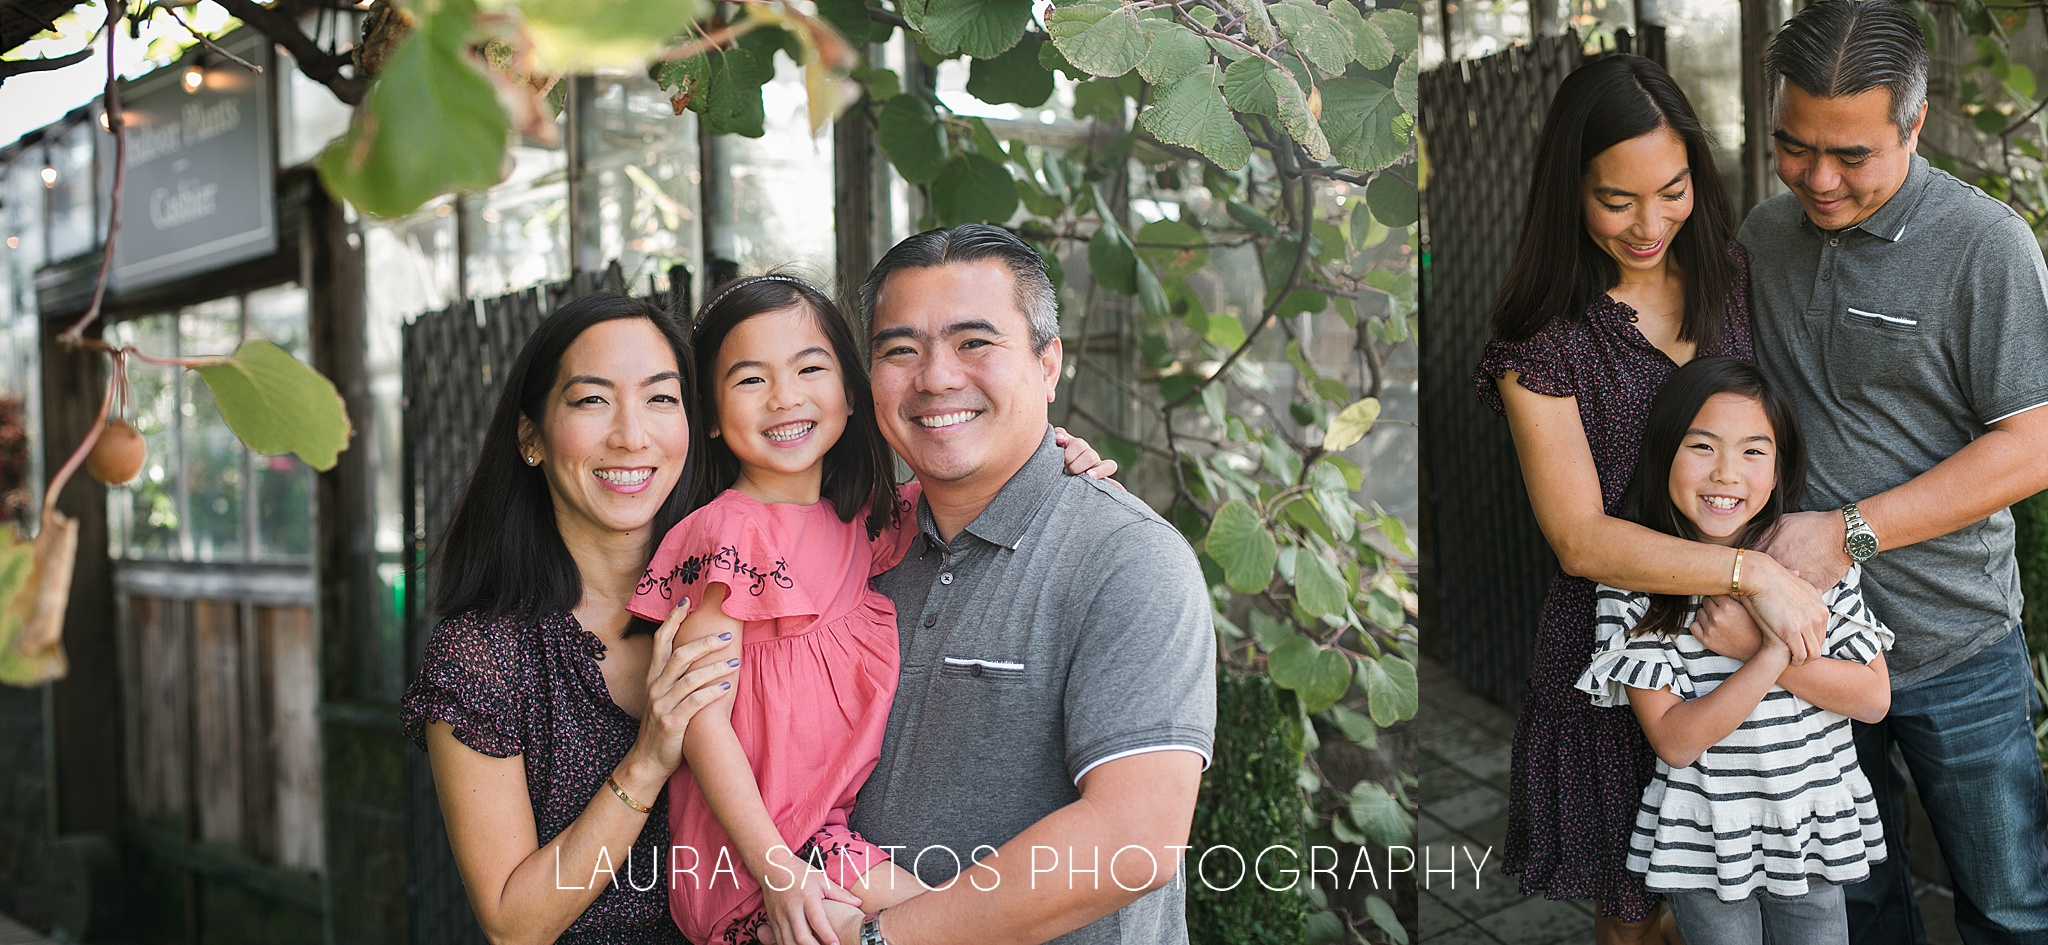 Laura Santos Photography Portland Oregon Family Photographer_0865.jpg